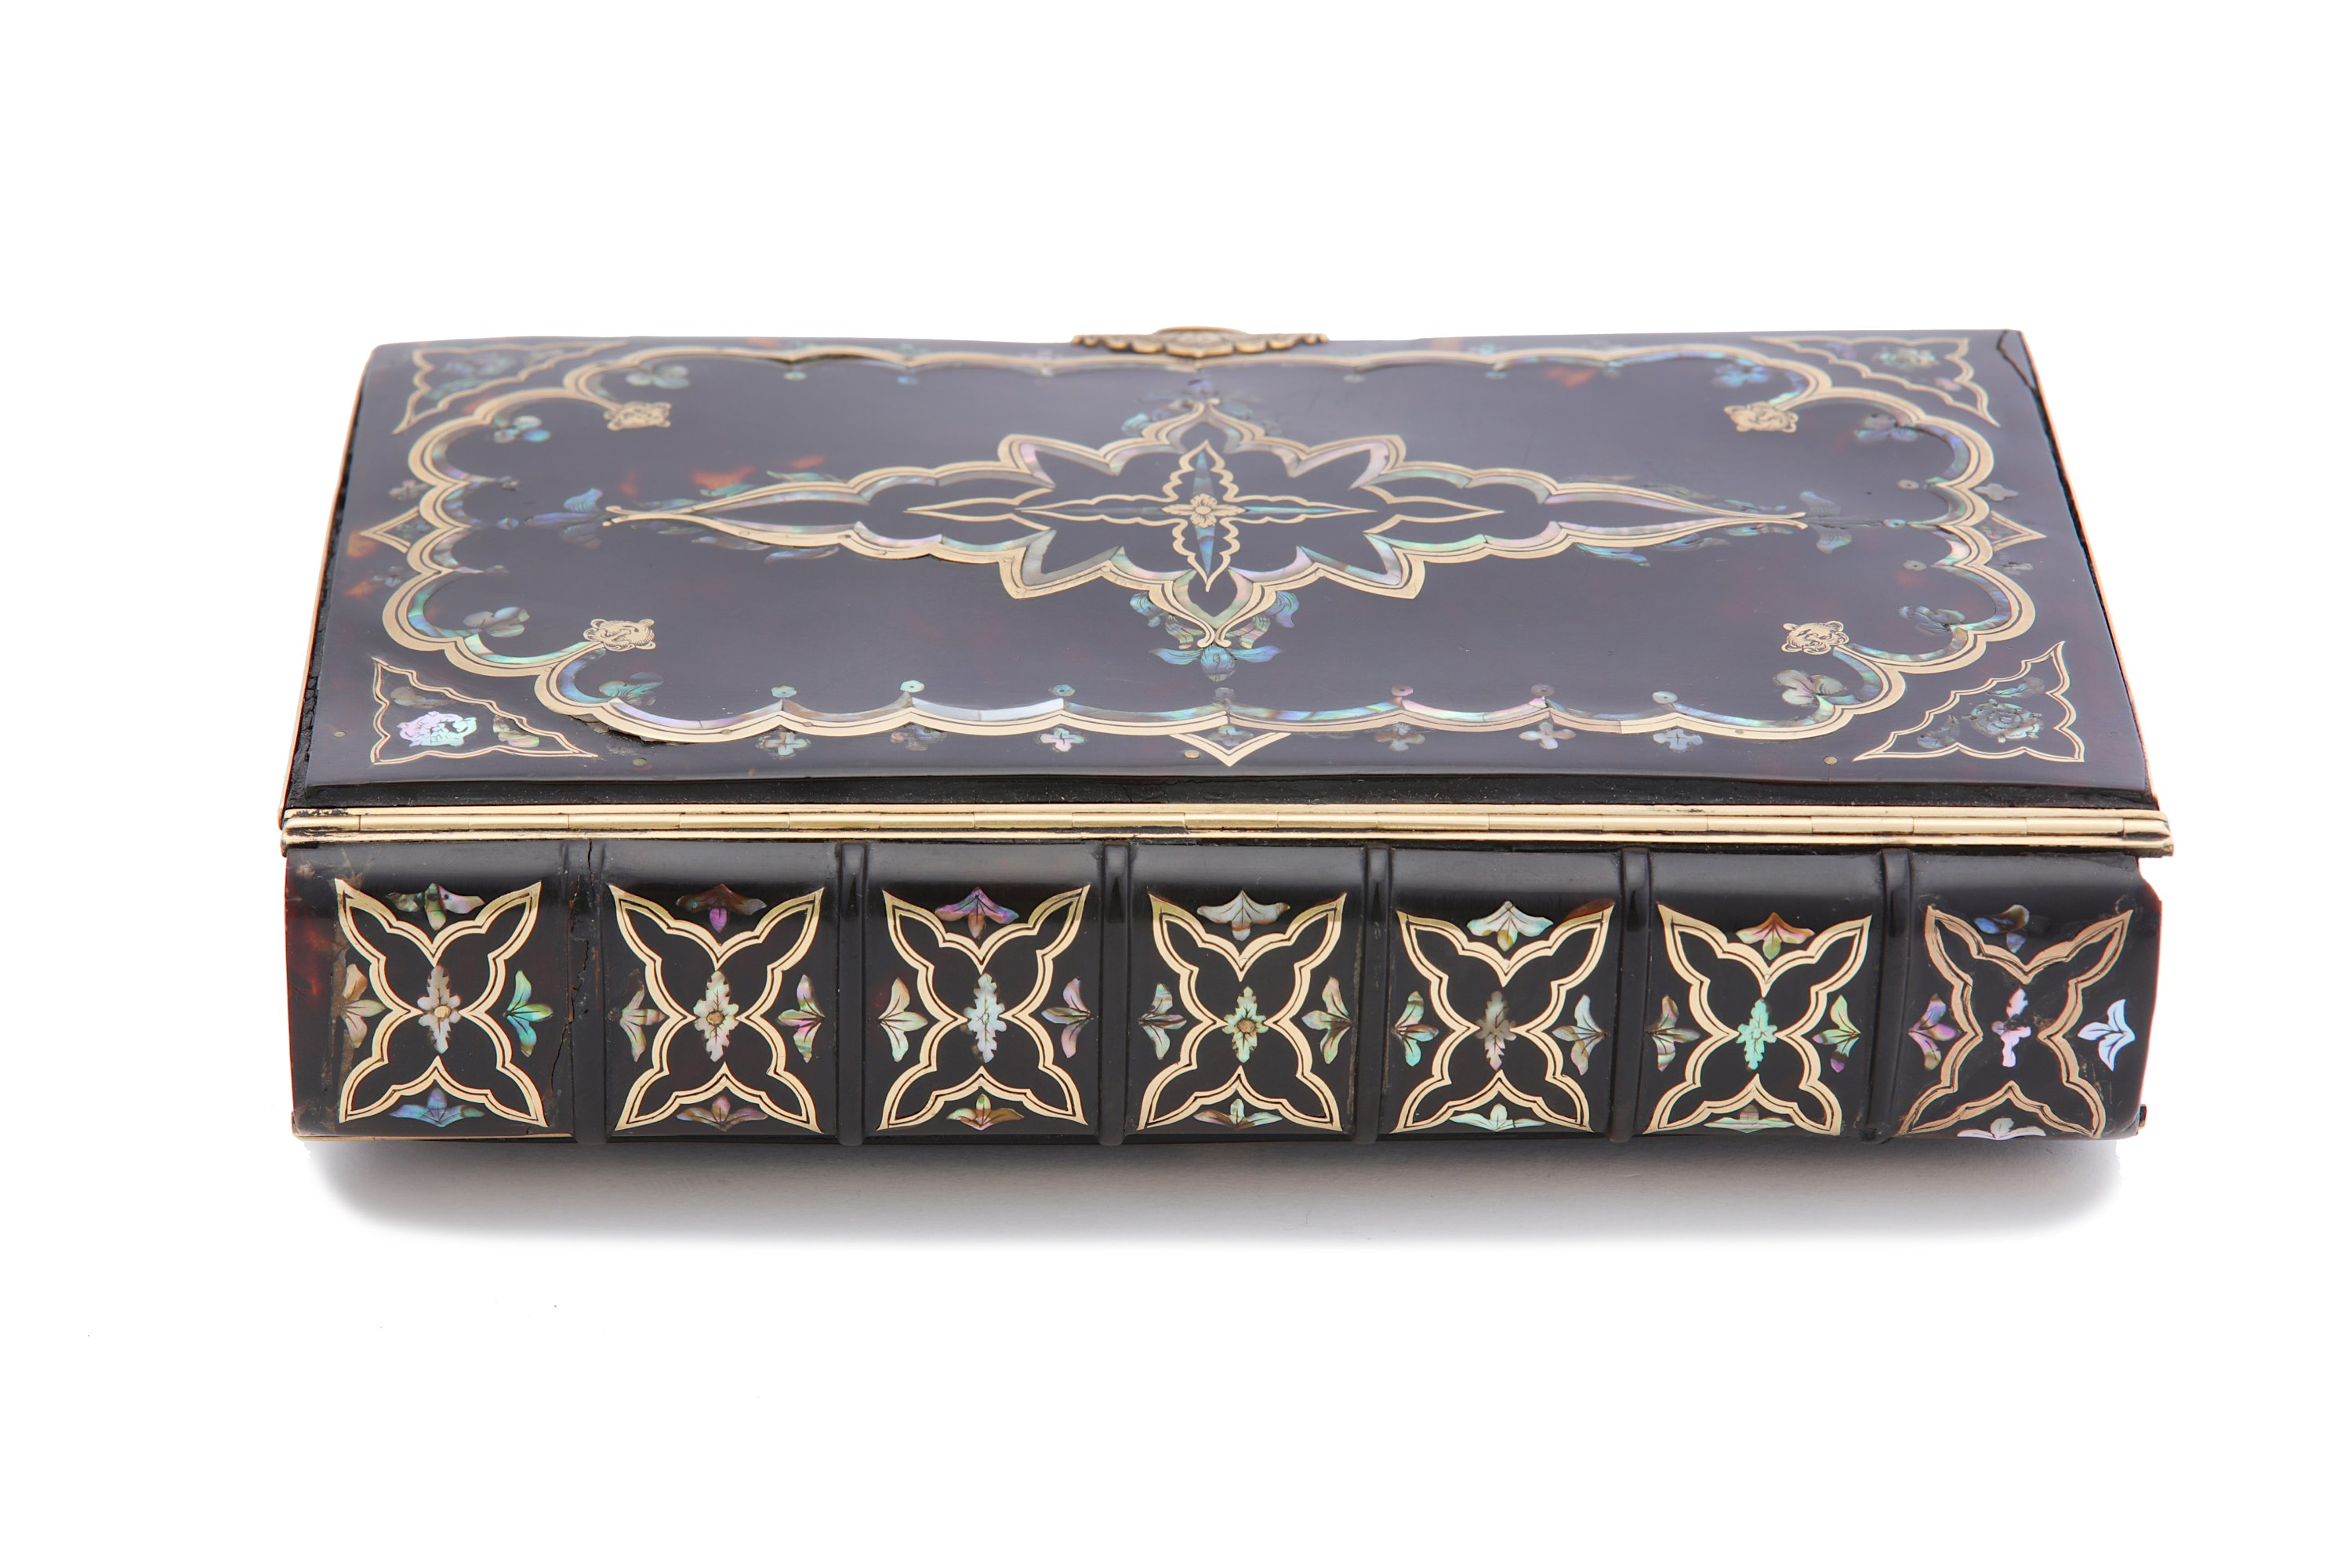 Lot 23 - An early to mid-18th century gold and abalone shell inlaid tortoiseshell bible binding, probably Eng